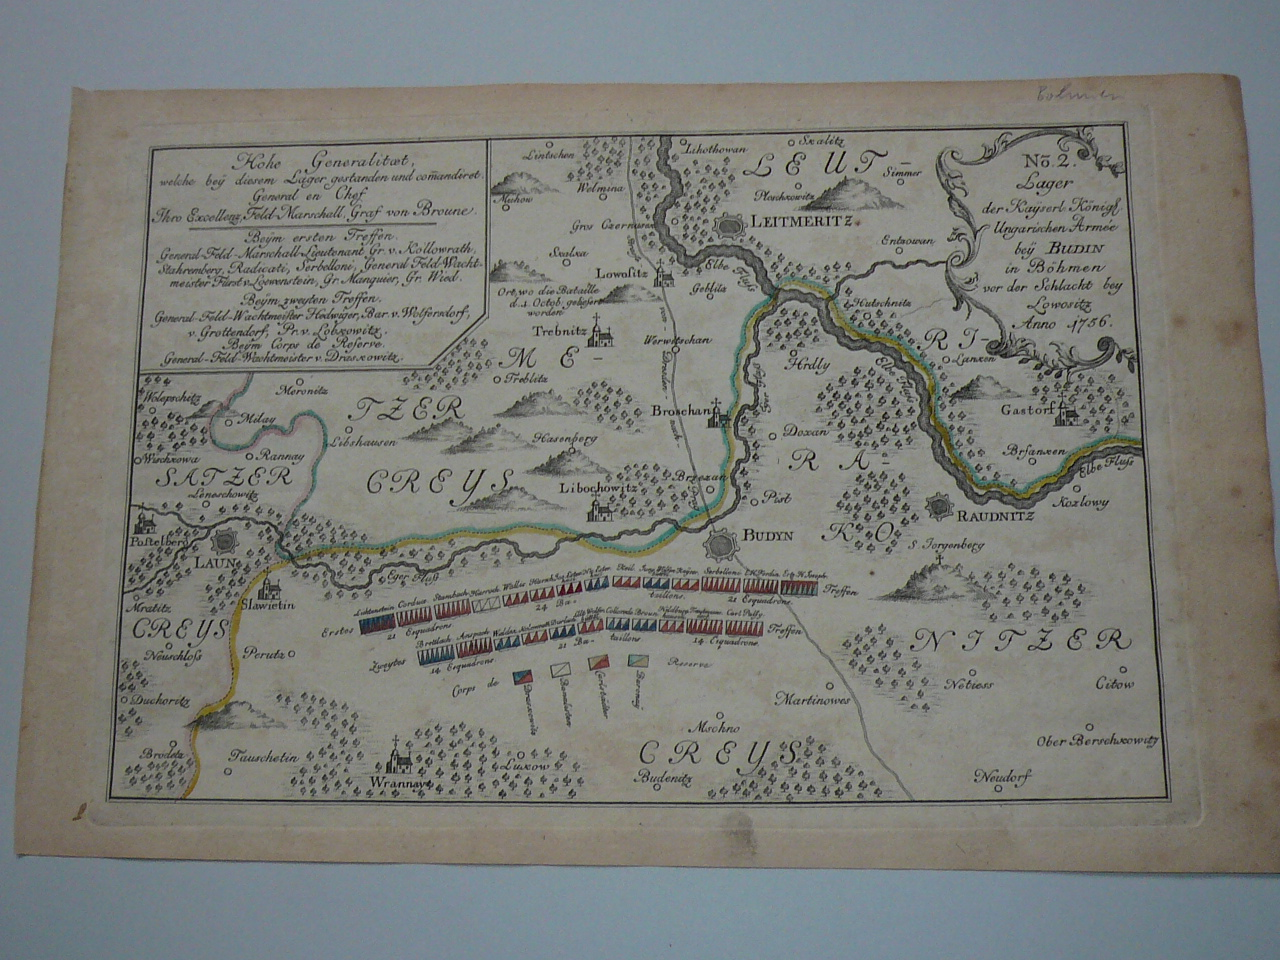 Litomerice,Labe, map anno 1765,Battle of Lowositz anno 1756